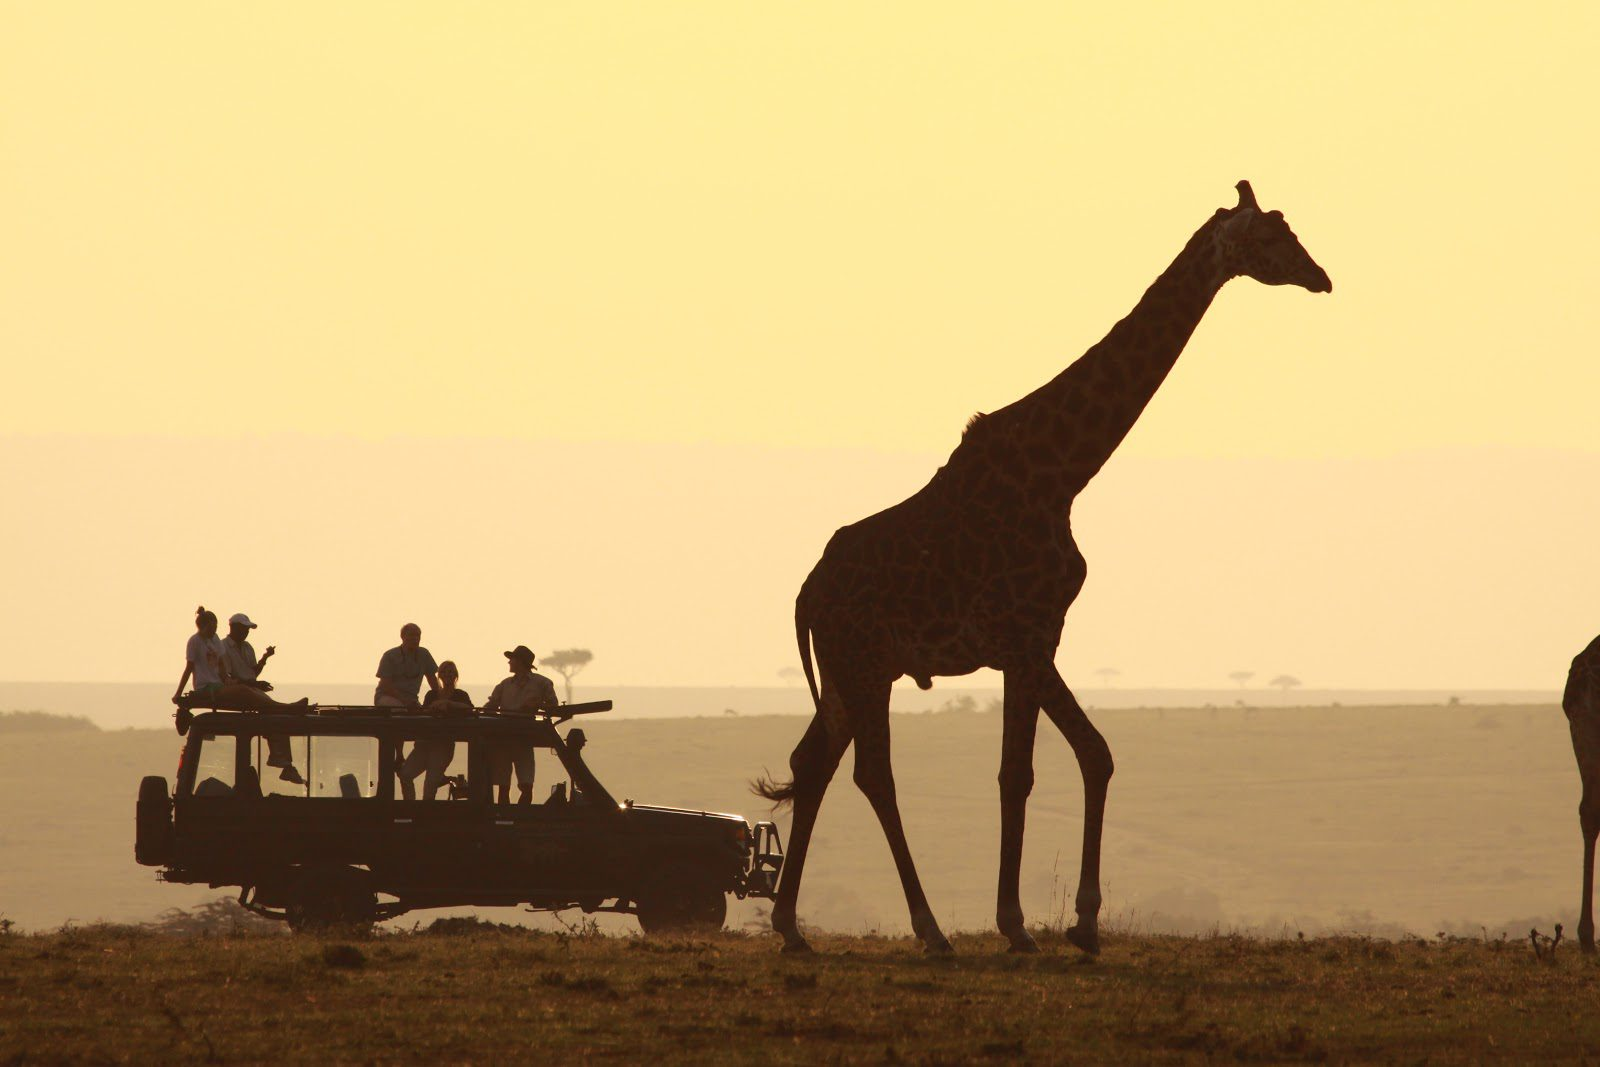 silhouette of a group of game drive vacation goers perched atop a game drive vehicle, parked at the heels of a giraffe